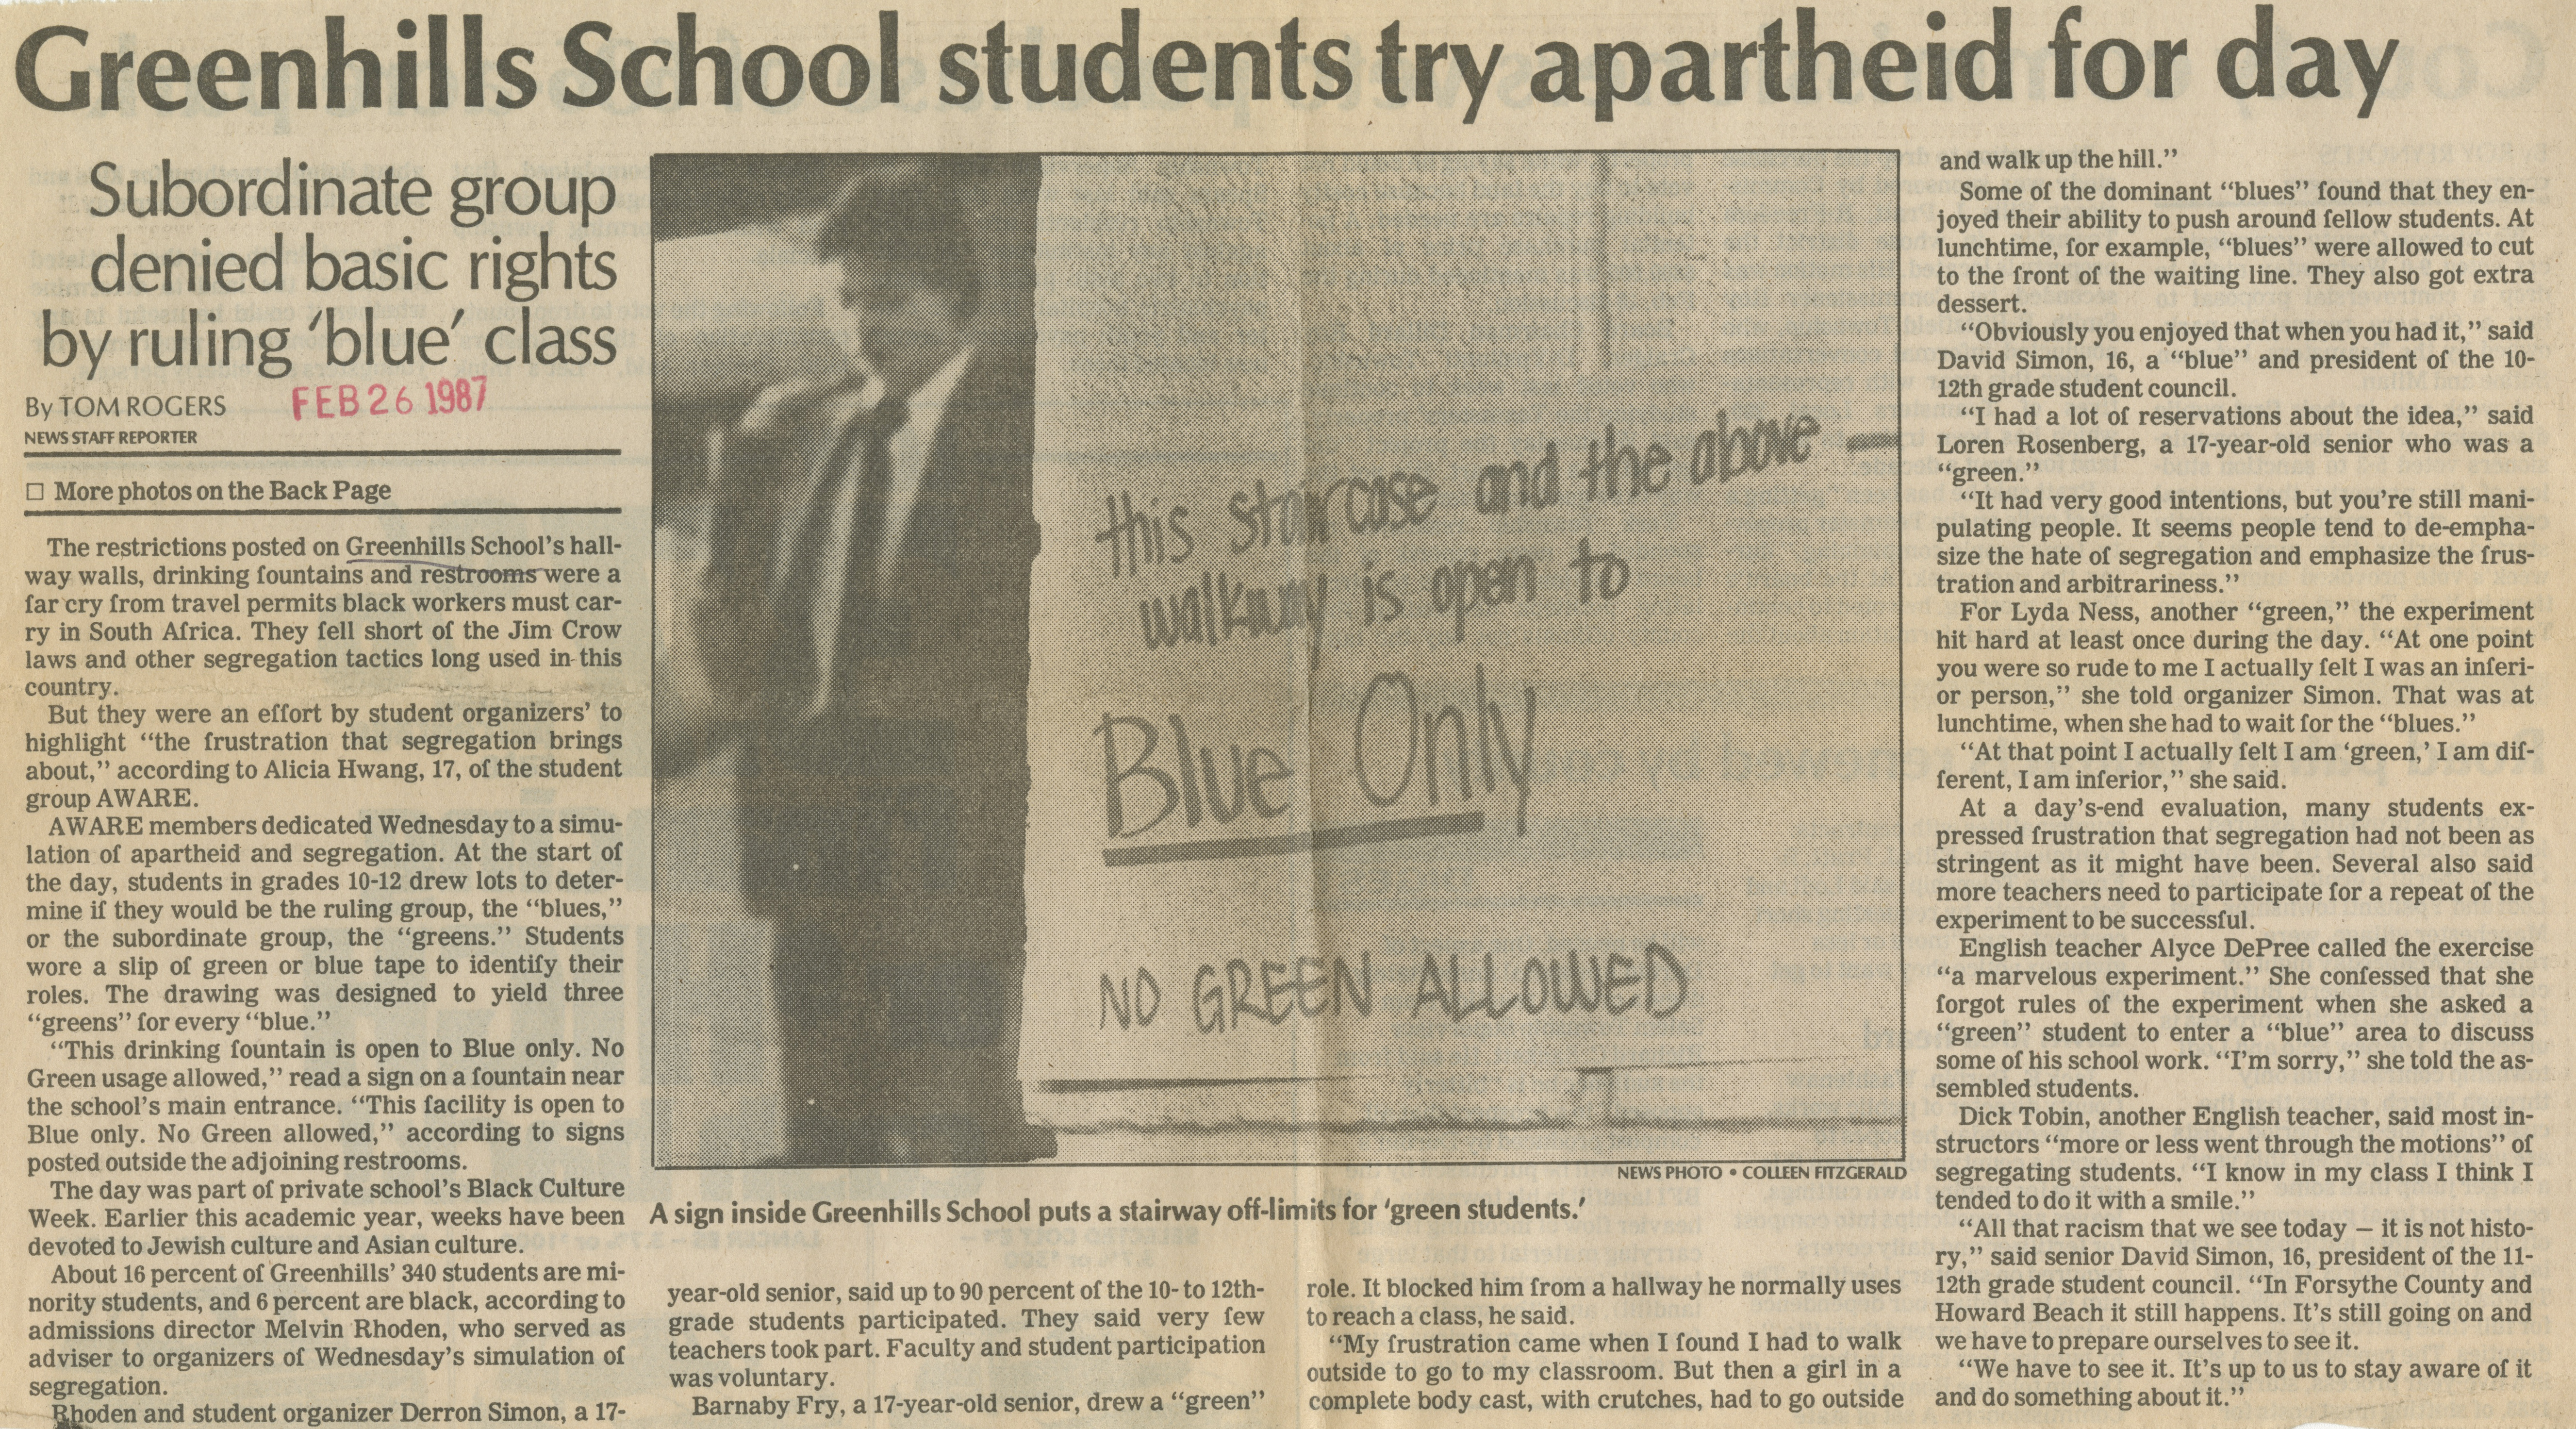 Greenhills School Students Try Apartheid For Day image